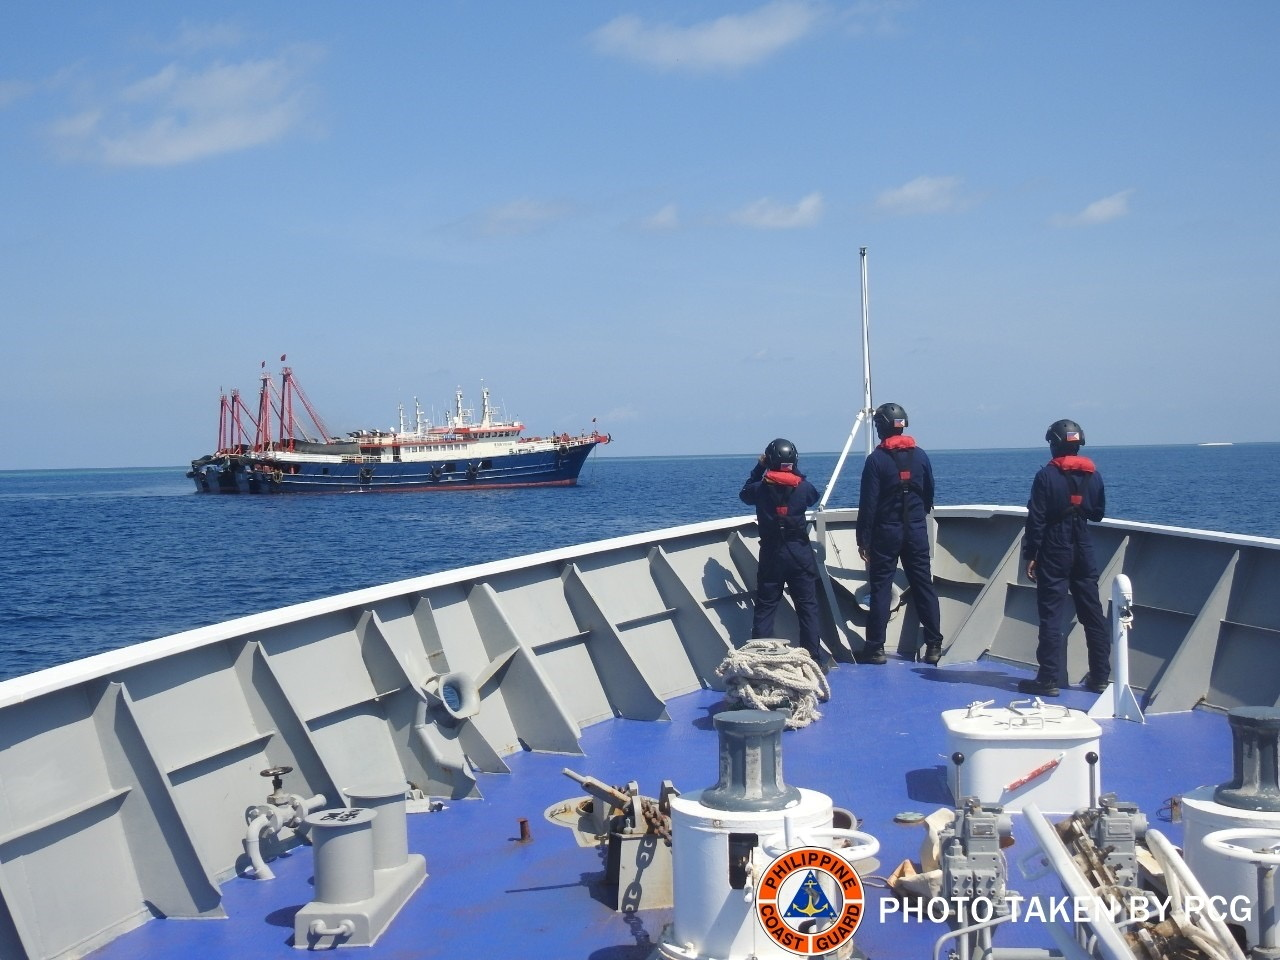 Philippine Coast Guard personnel survey several ships believed to be Chinese militia vessels in Sabina Shoal in the South China Sea, in a handout photo distributed by the Philippine Coast Guard on May 5 and taken according to source on April 27, 2021. Philippine Coast Guard/Handout via REUTERS